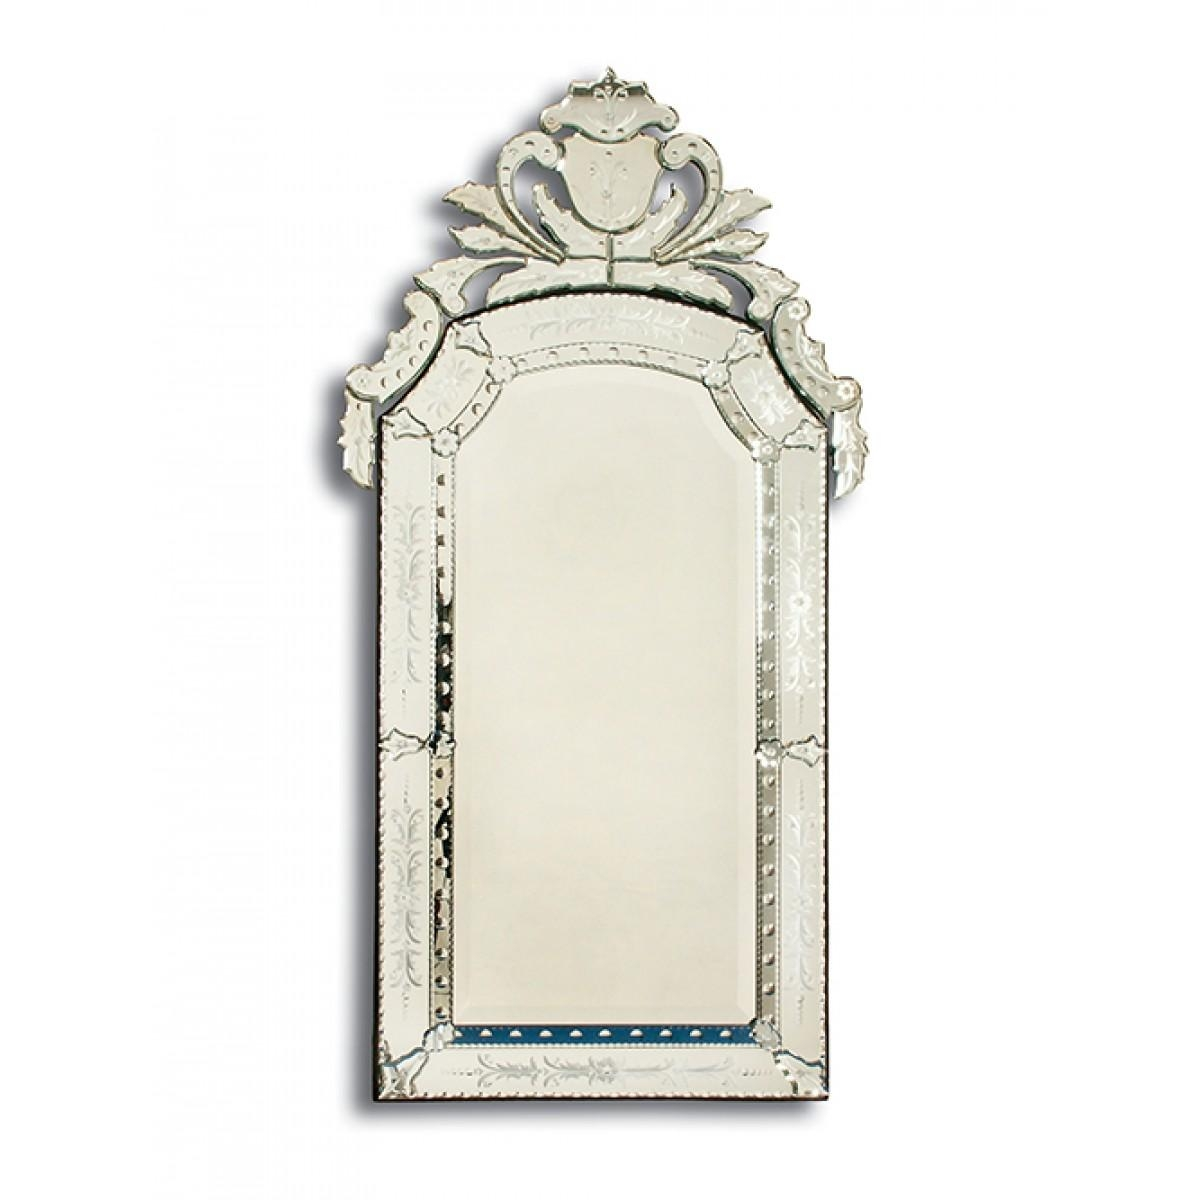 La Barge Mirrors & Table Outlet | Discount La Barge Pertaining To Venetian Glass Mirrors Sale (View 8 of 20)